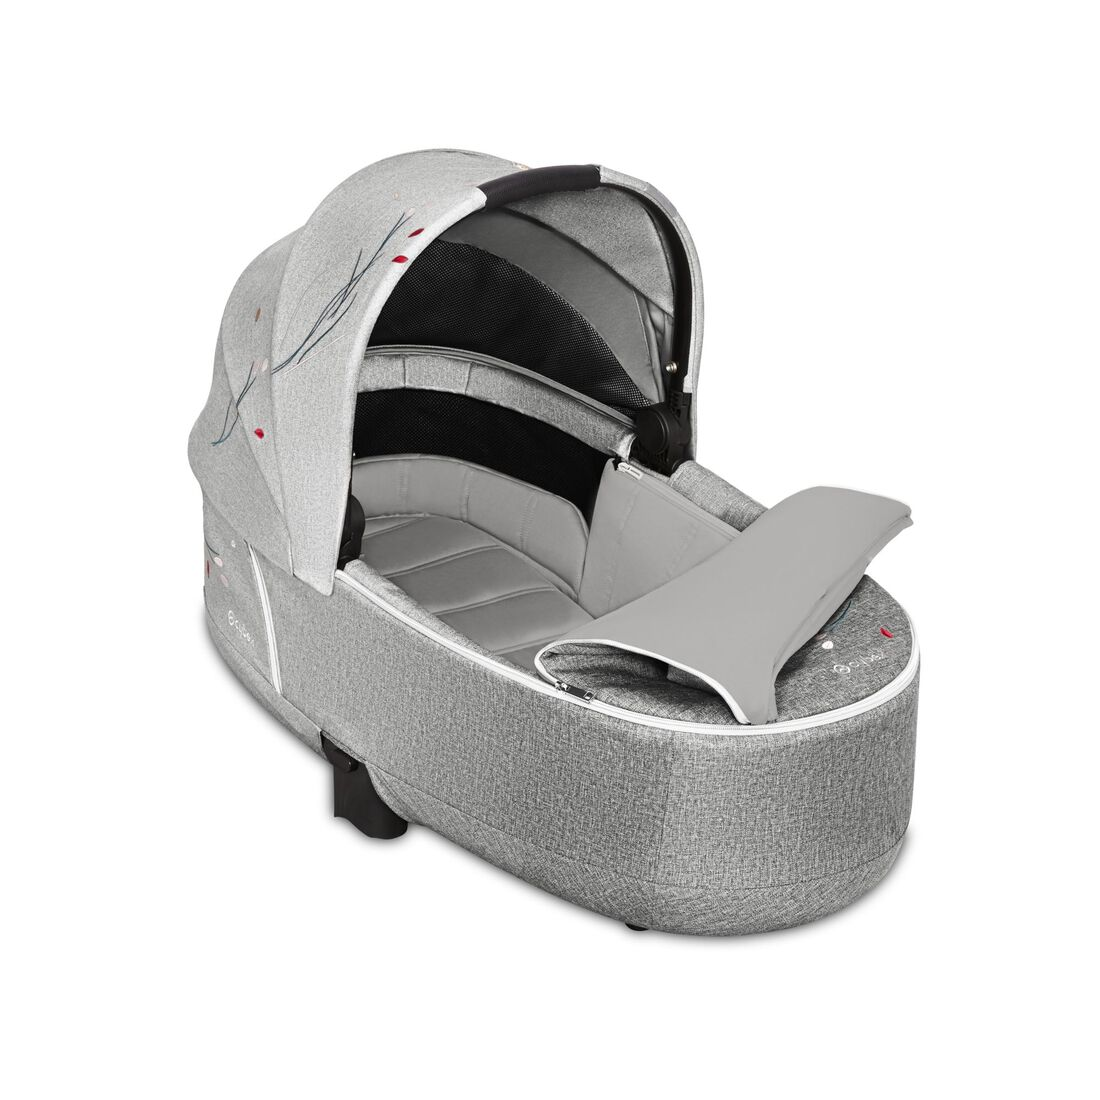 CYBEX Priam Lux Carry Cot - Koi in Koi large Bild 2